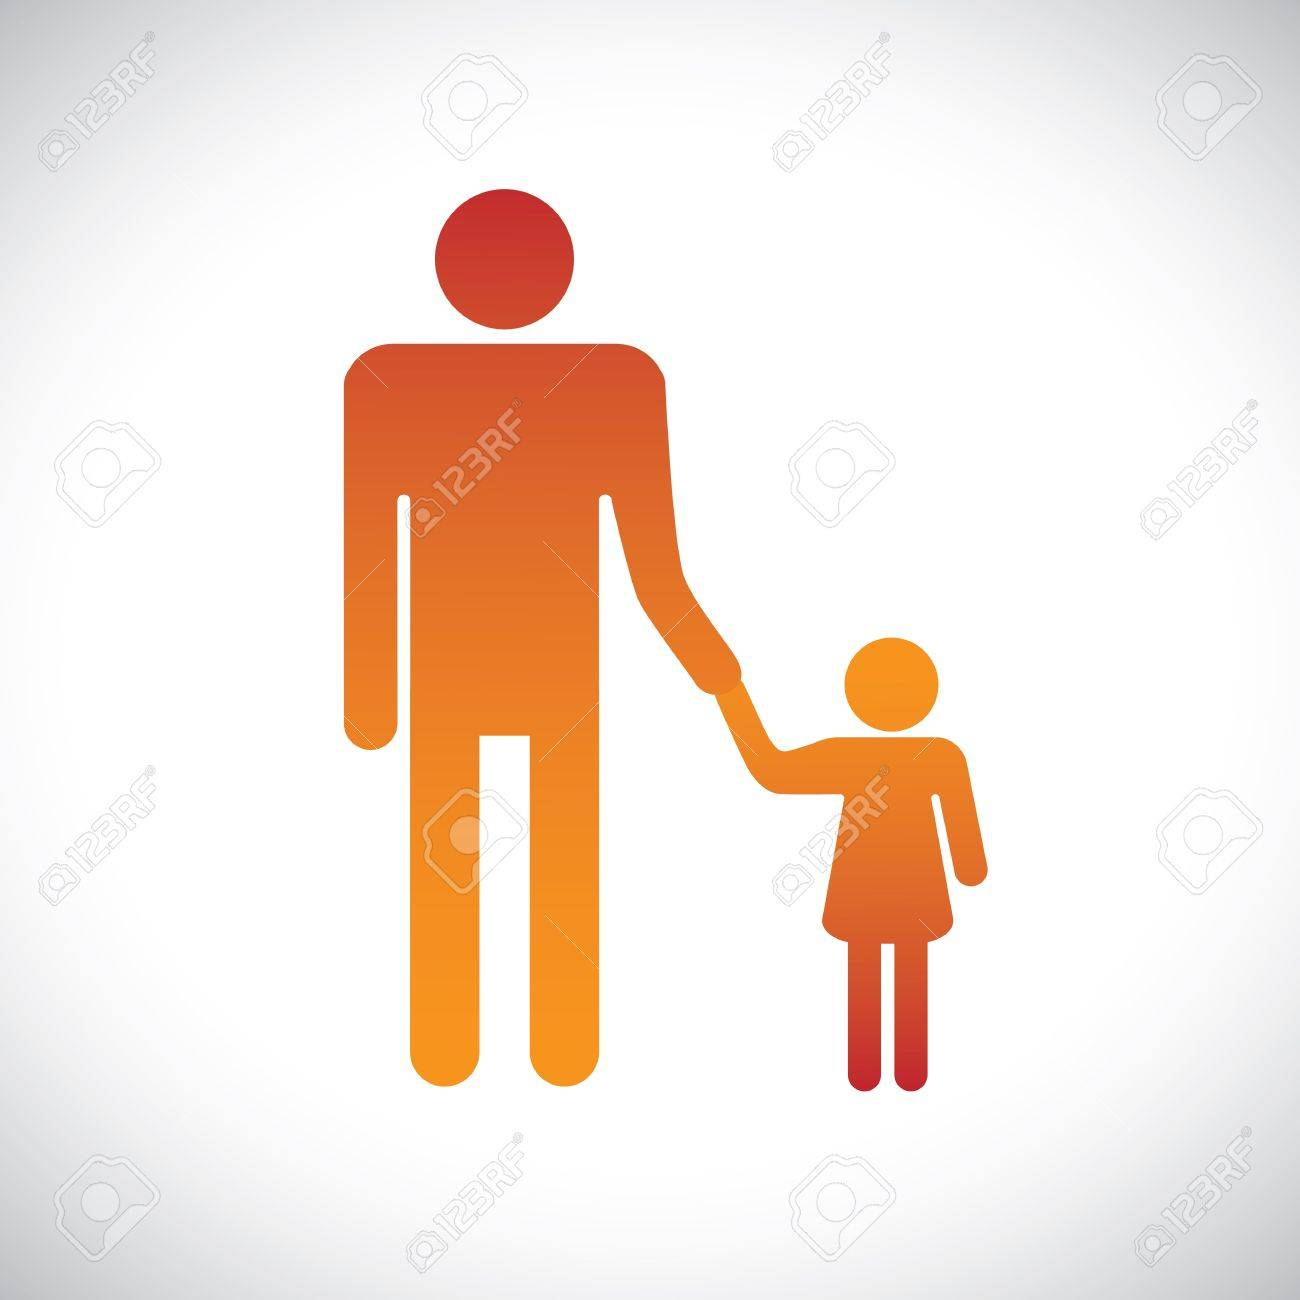 Concept illustration of father & daughter together. This graphic represents the bonding between a parent and child Stock Vector - 16600343